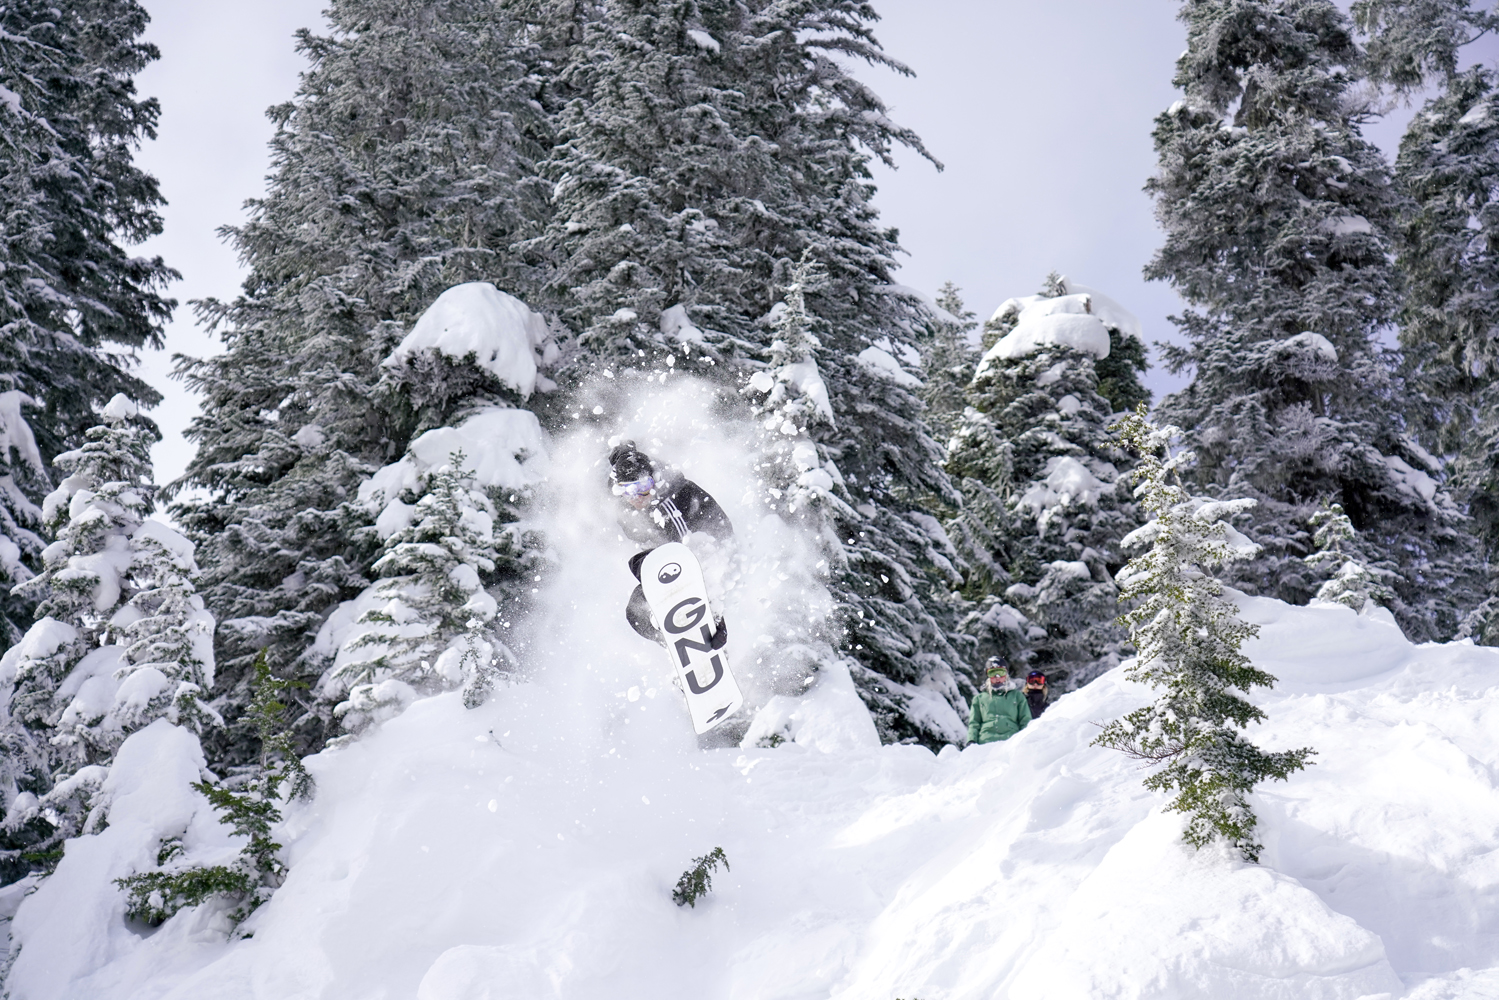 Austin Blair grabbing some air in the Snake Dance area of Alpental.